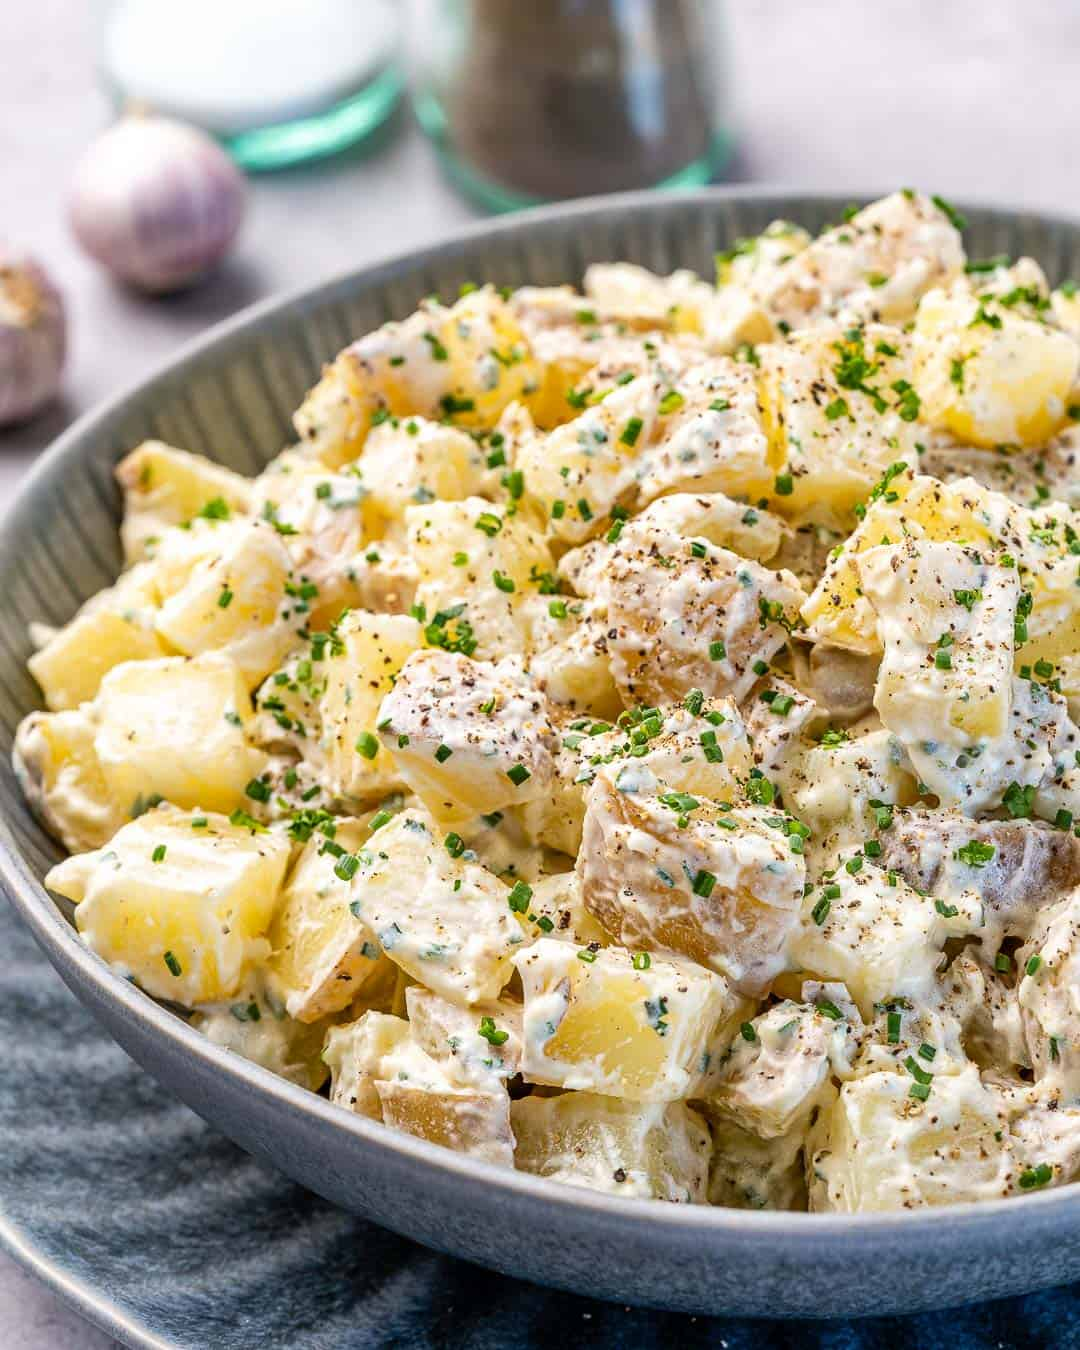 Bowl of healthy mustard potato salad with salt and pepper in background